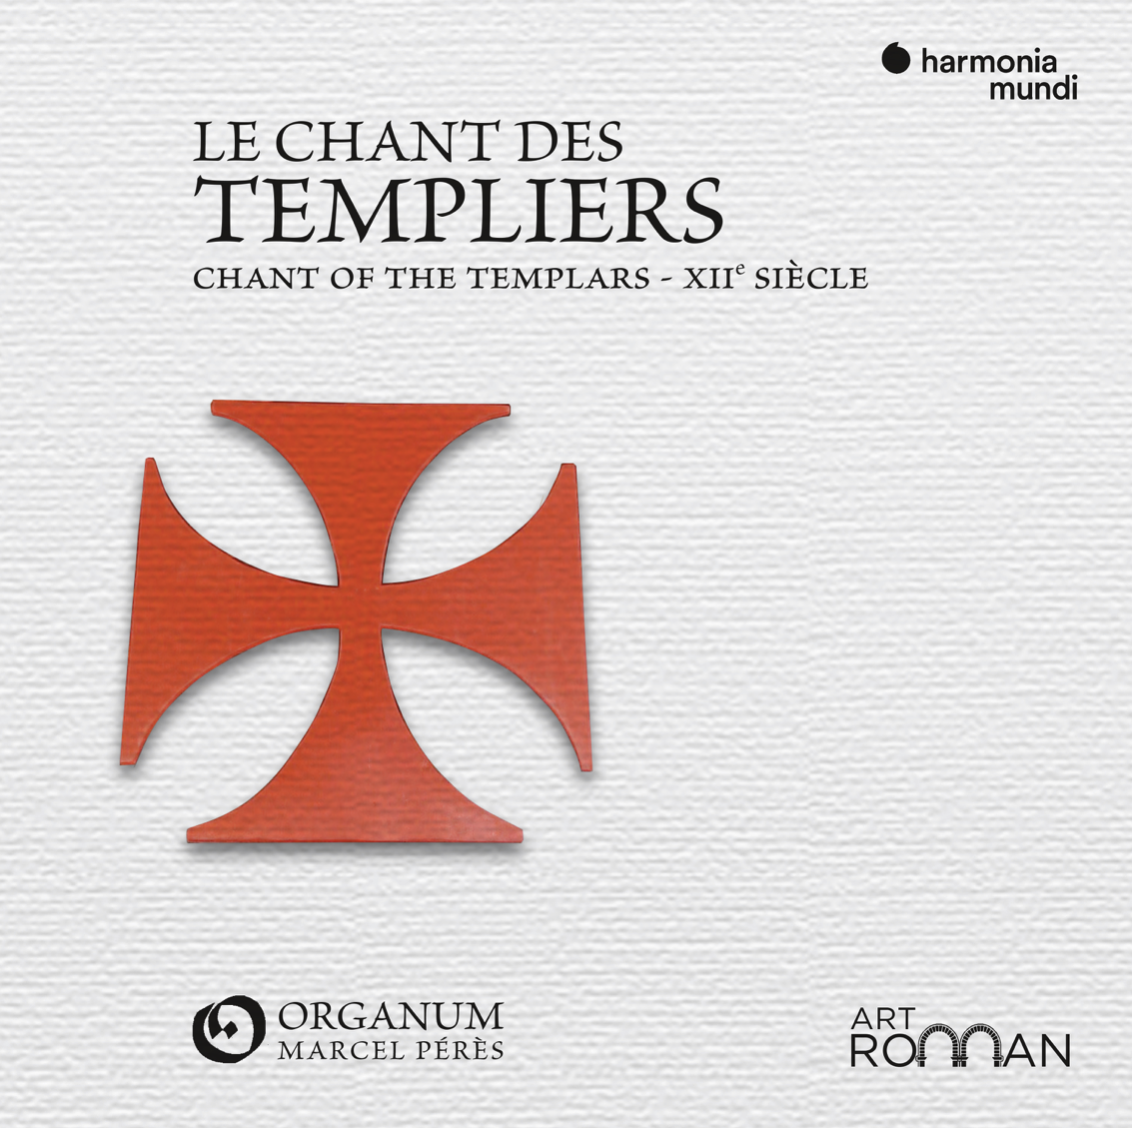 LE CHANT DES TEMPLIERS (XIIe siècle) Chant of the Templars HMO 8905302